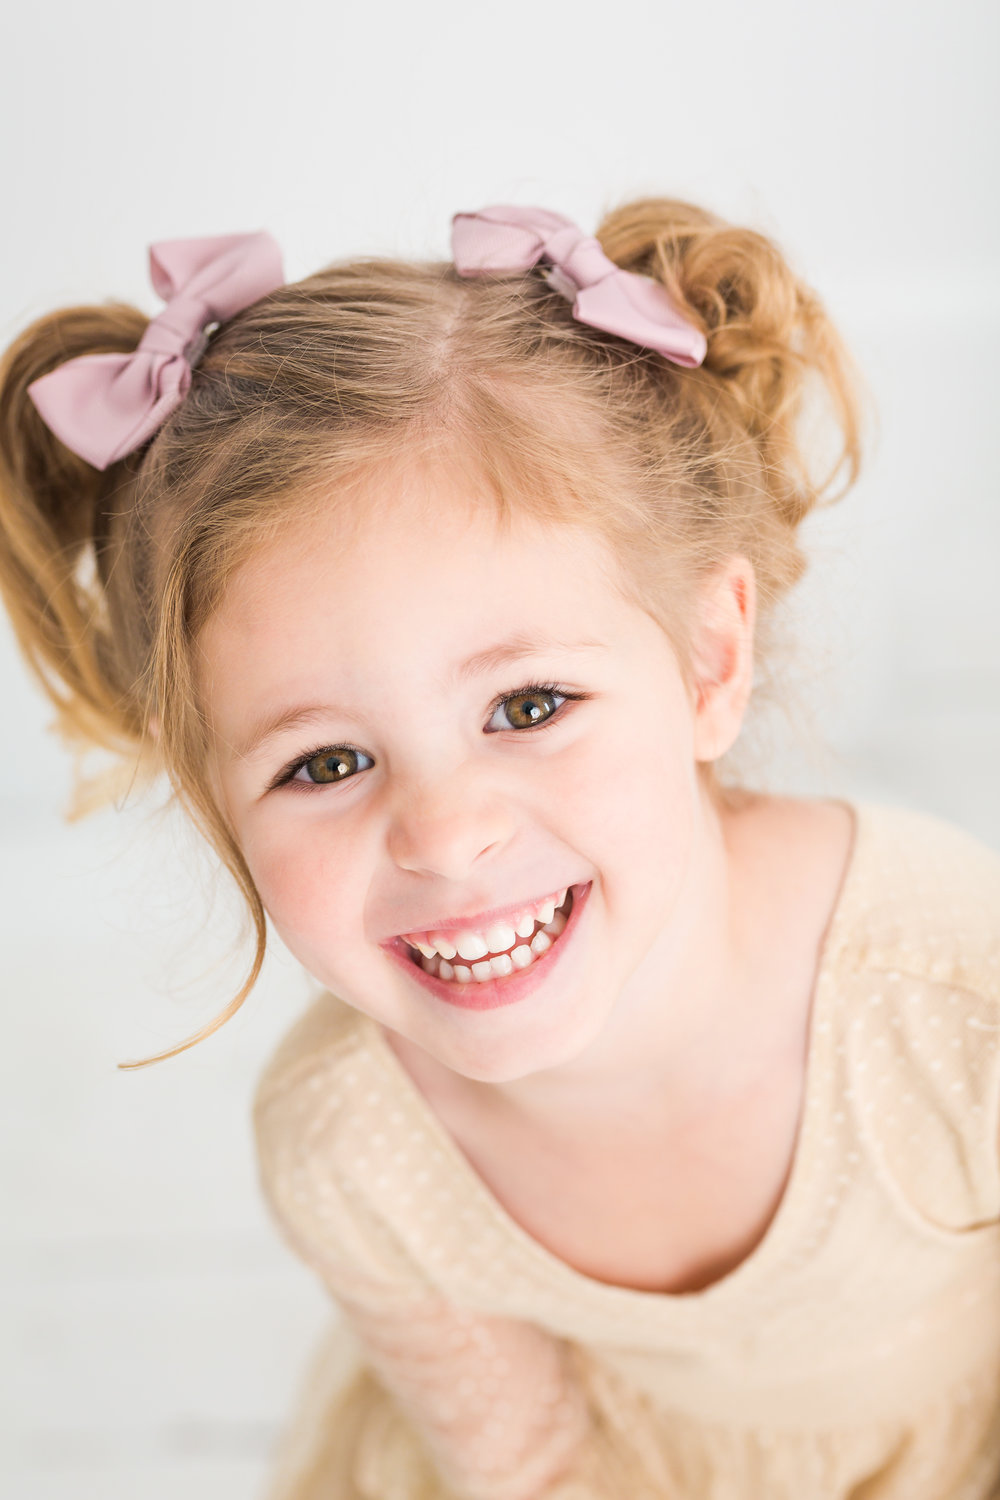 Grinning Girl with Pig Tails